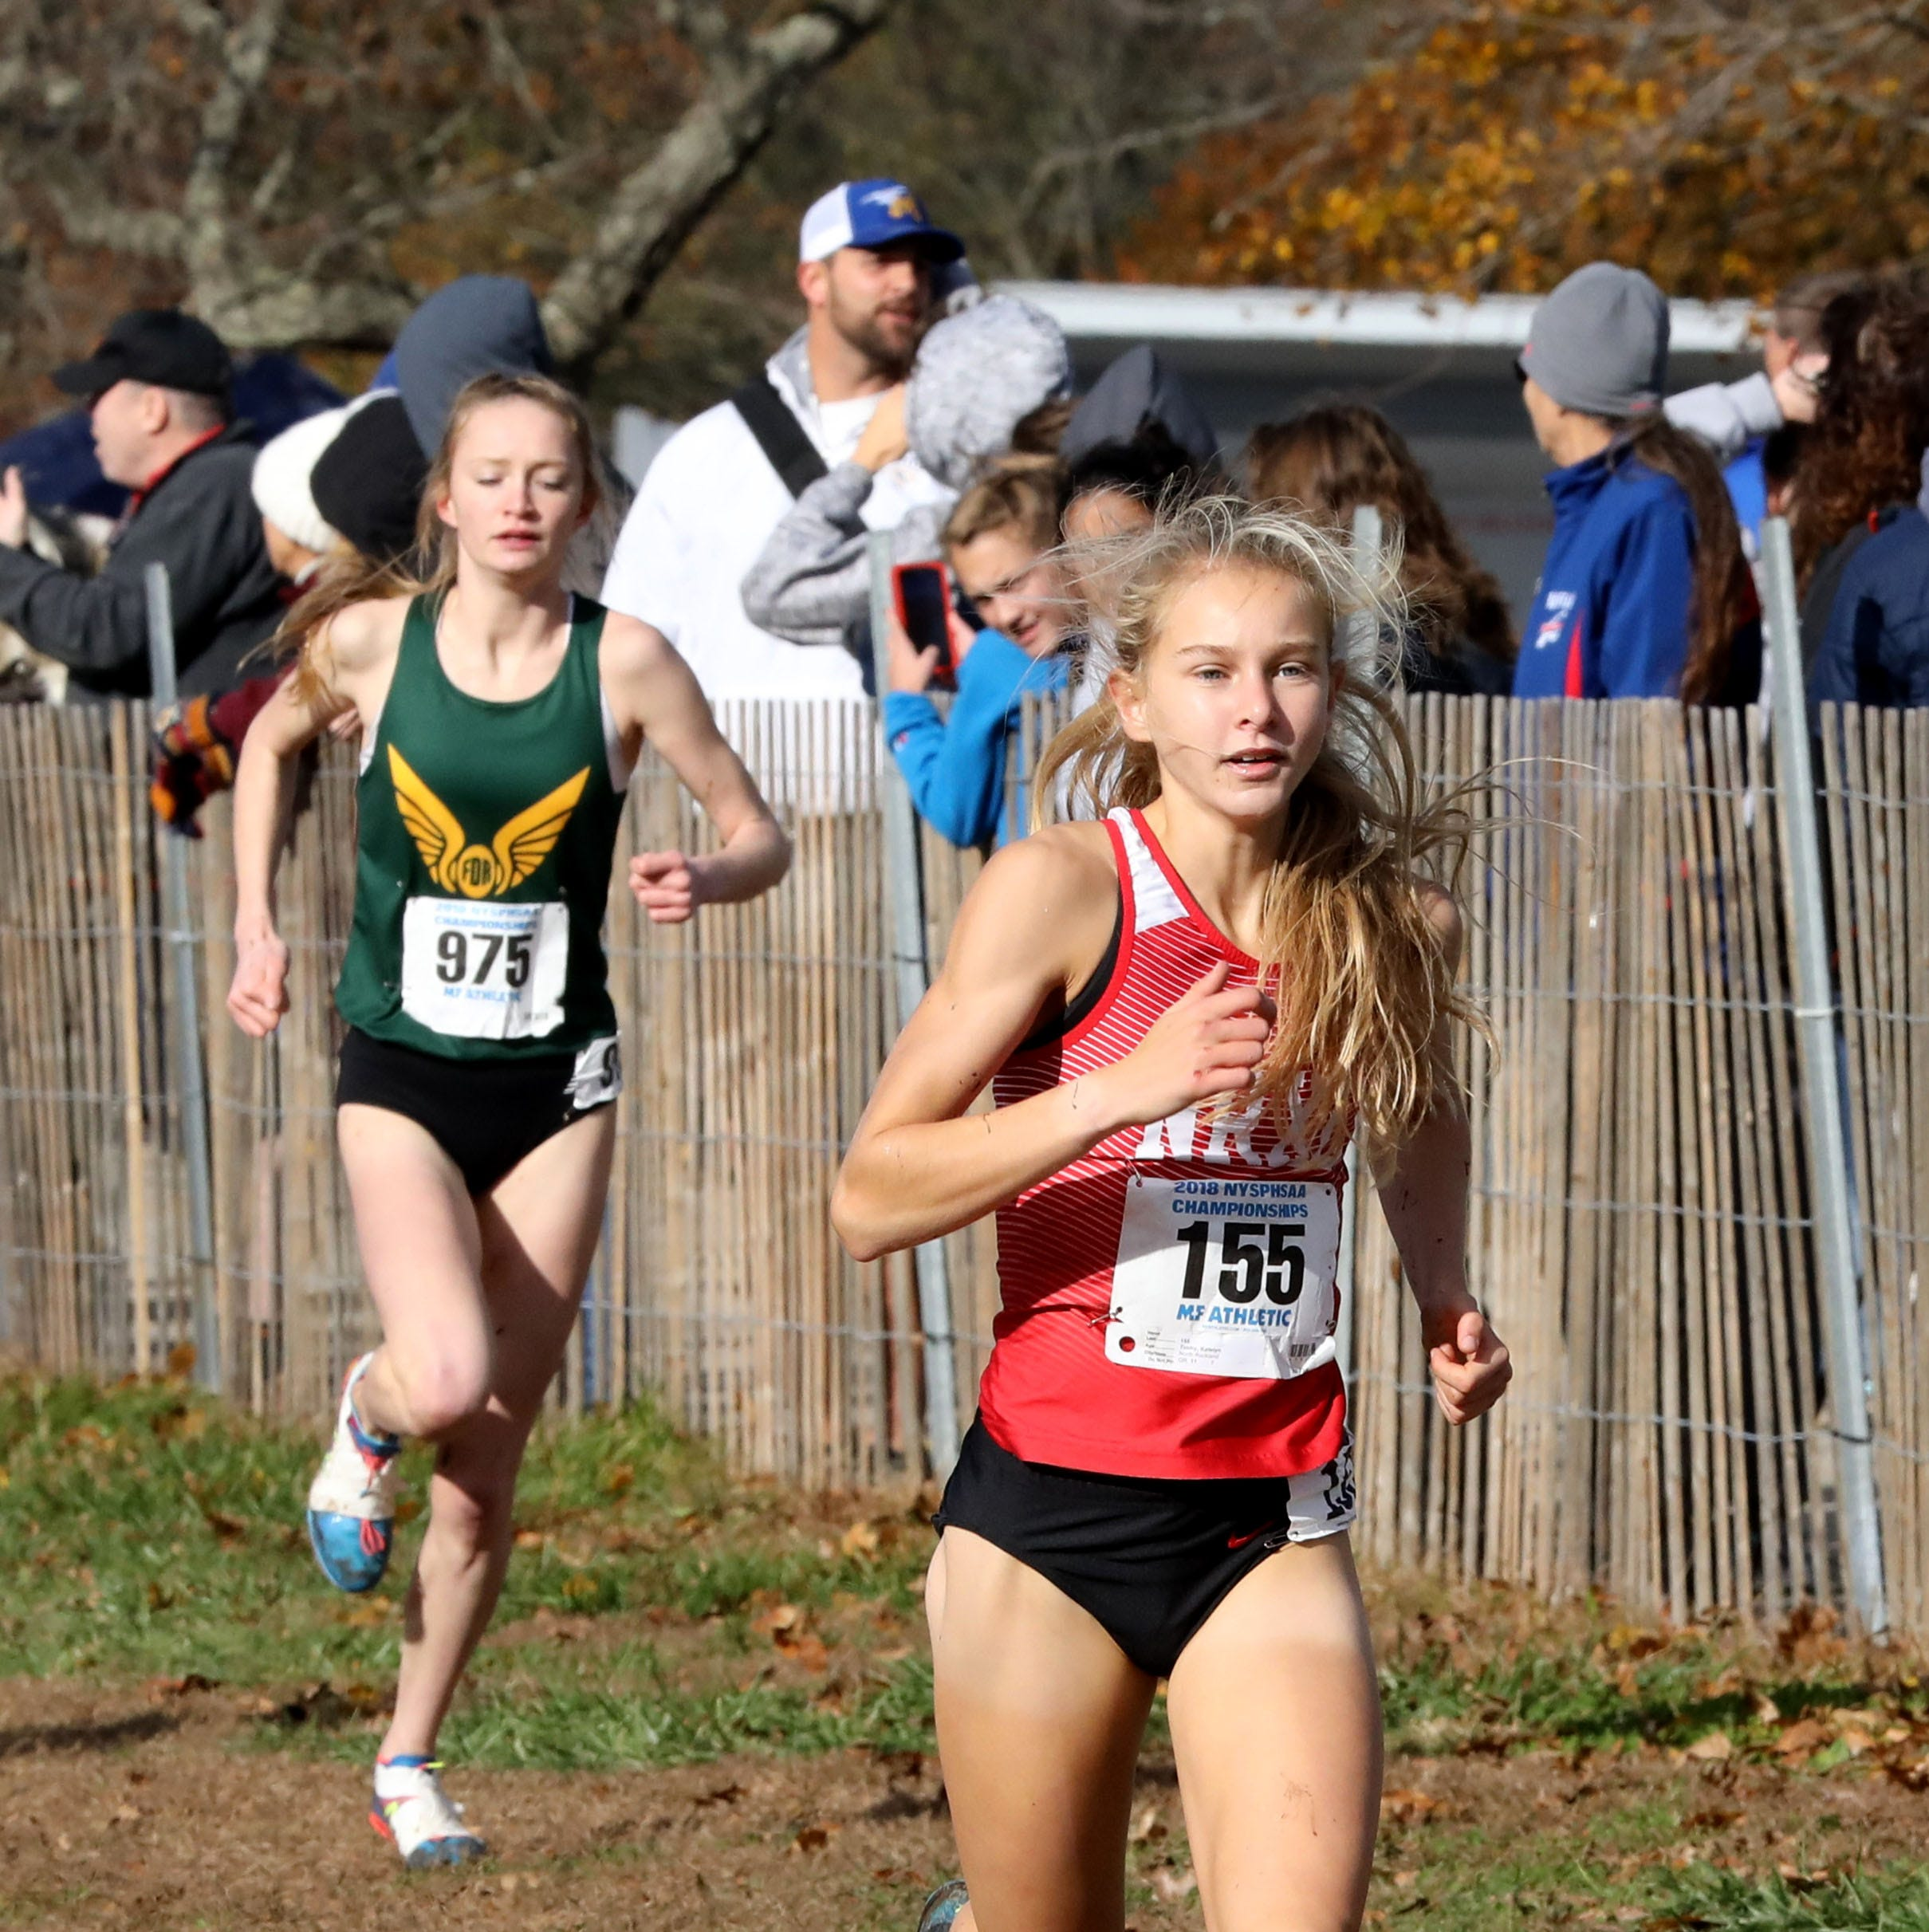 Cross-country: State Fed cancelled, but Touhy & others to run at Nationals qualifier